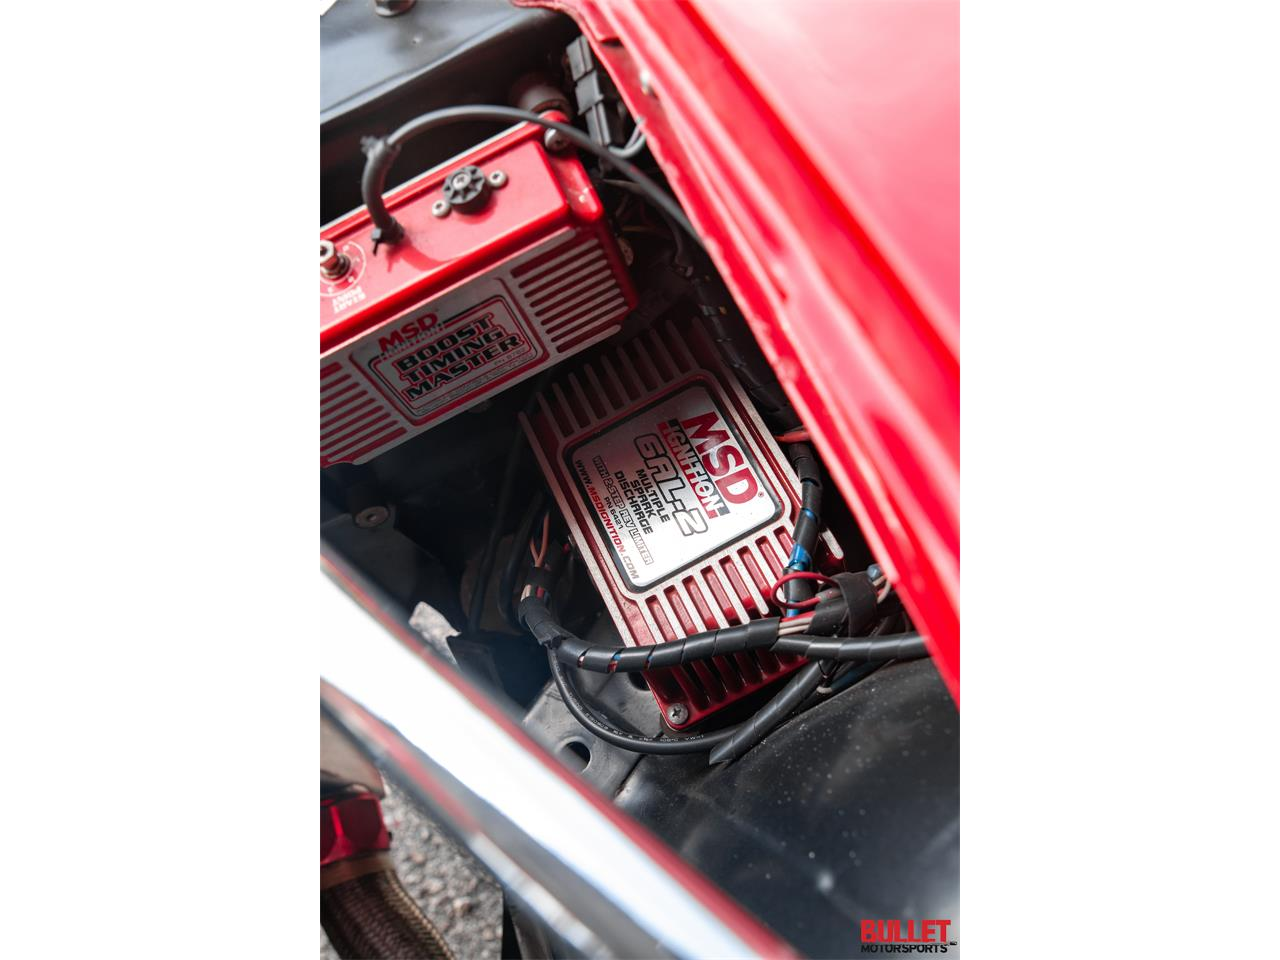 Large Picture of Classic '67 Camaro located in Florida - $49,950.00 Offered by Bullet Motorsports Inc - QIJZ